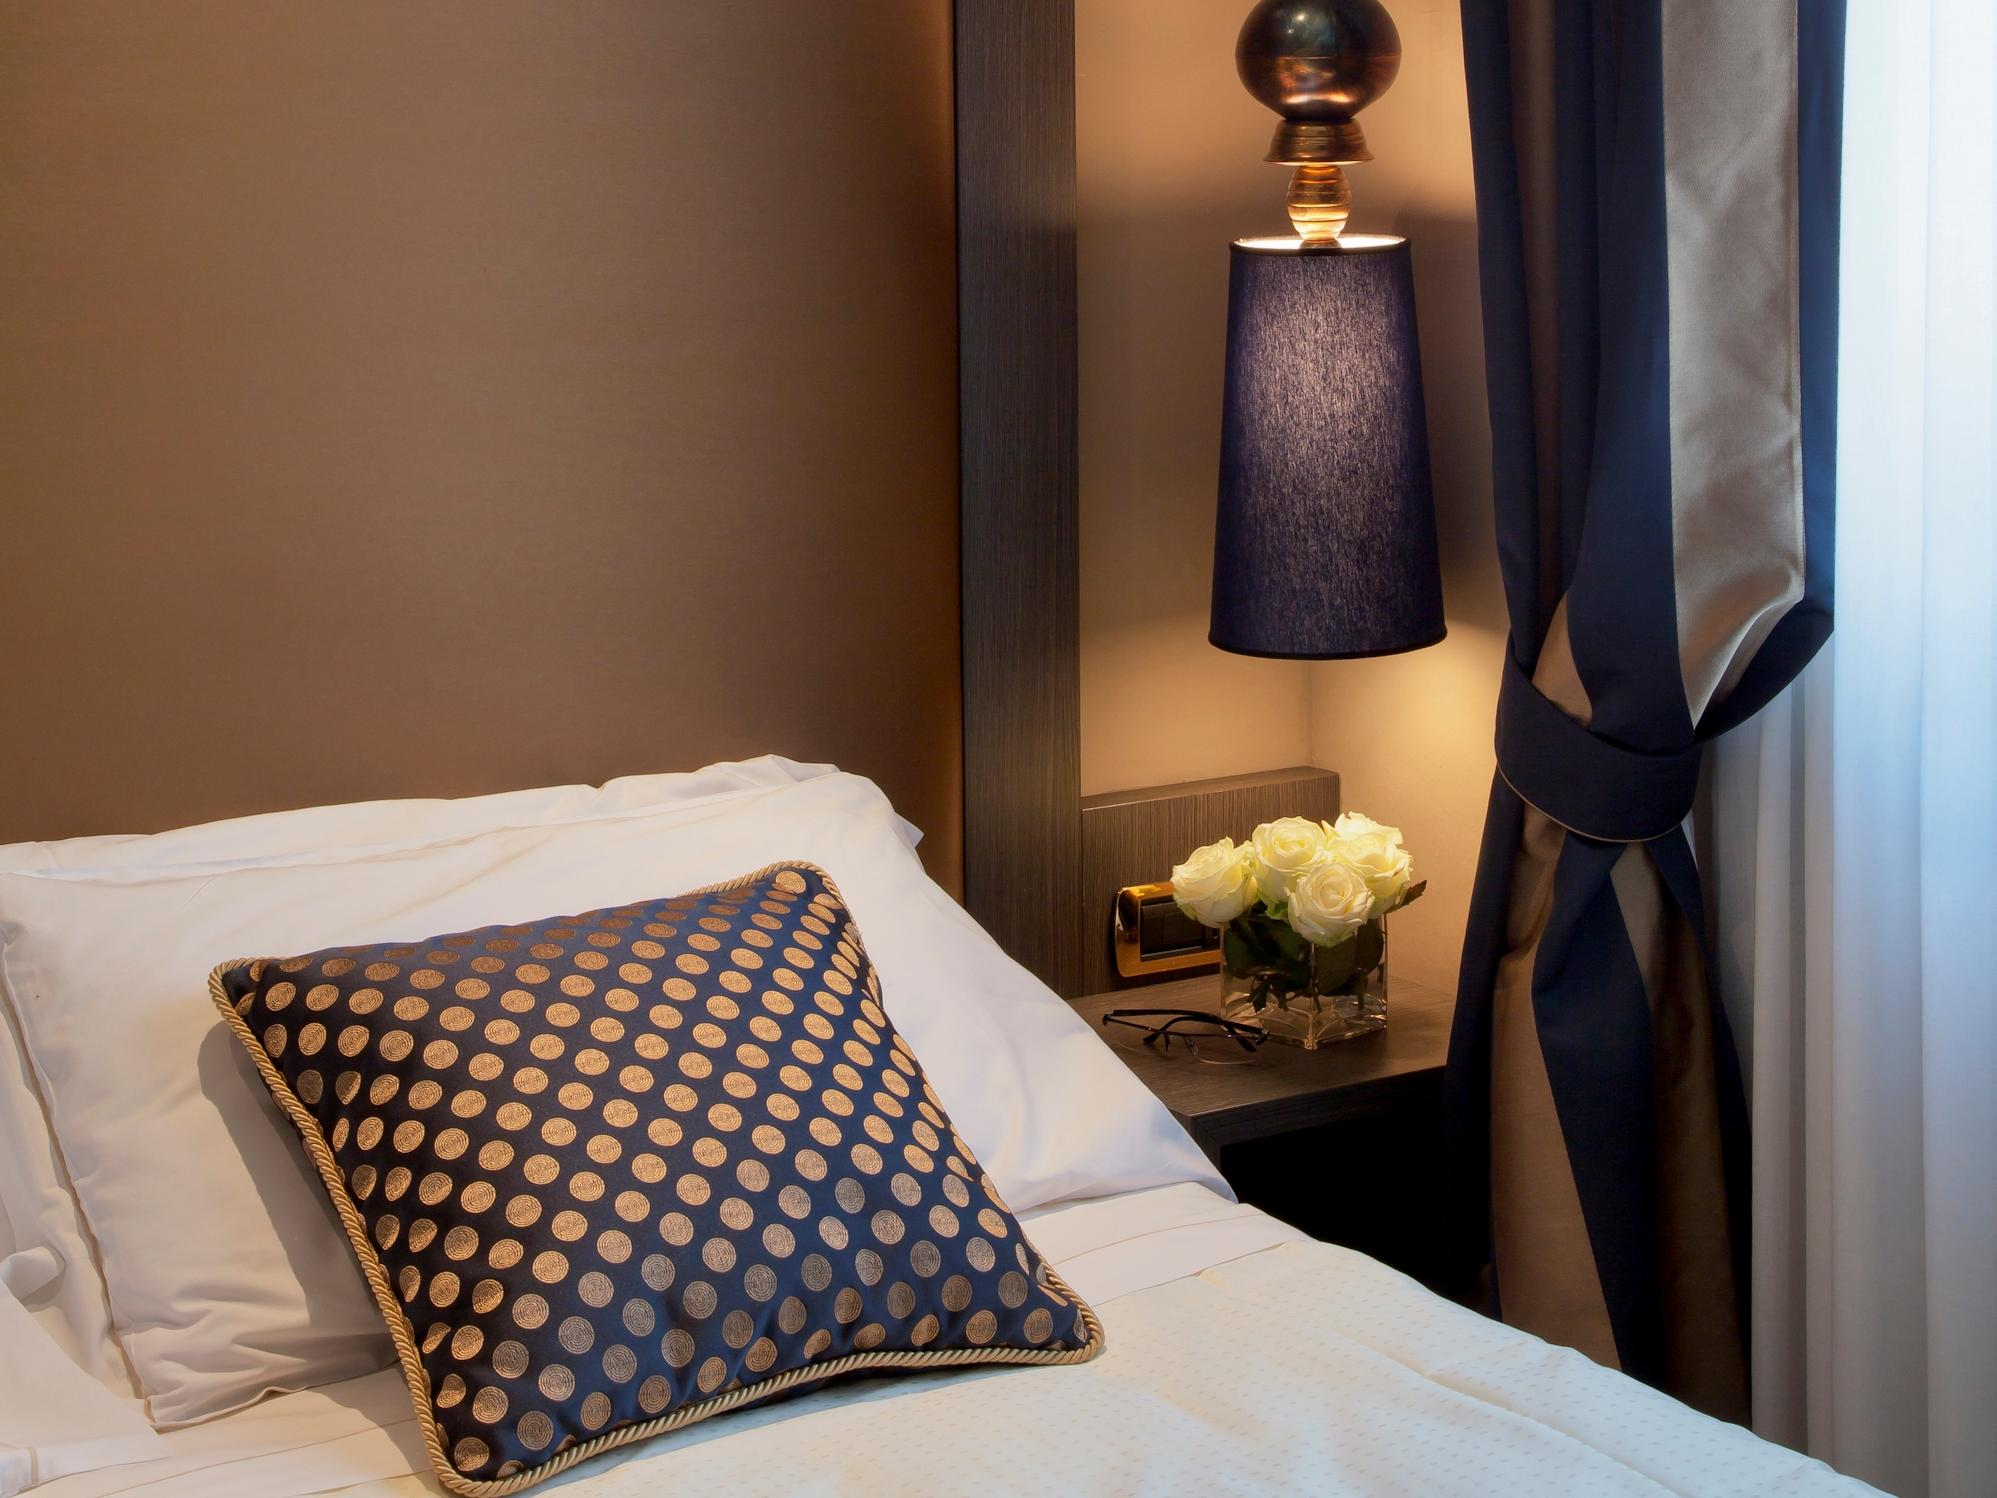 Superior Double Room with Single Use at Hotel Mozart in Milan